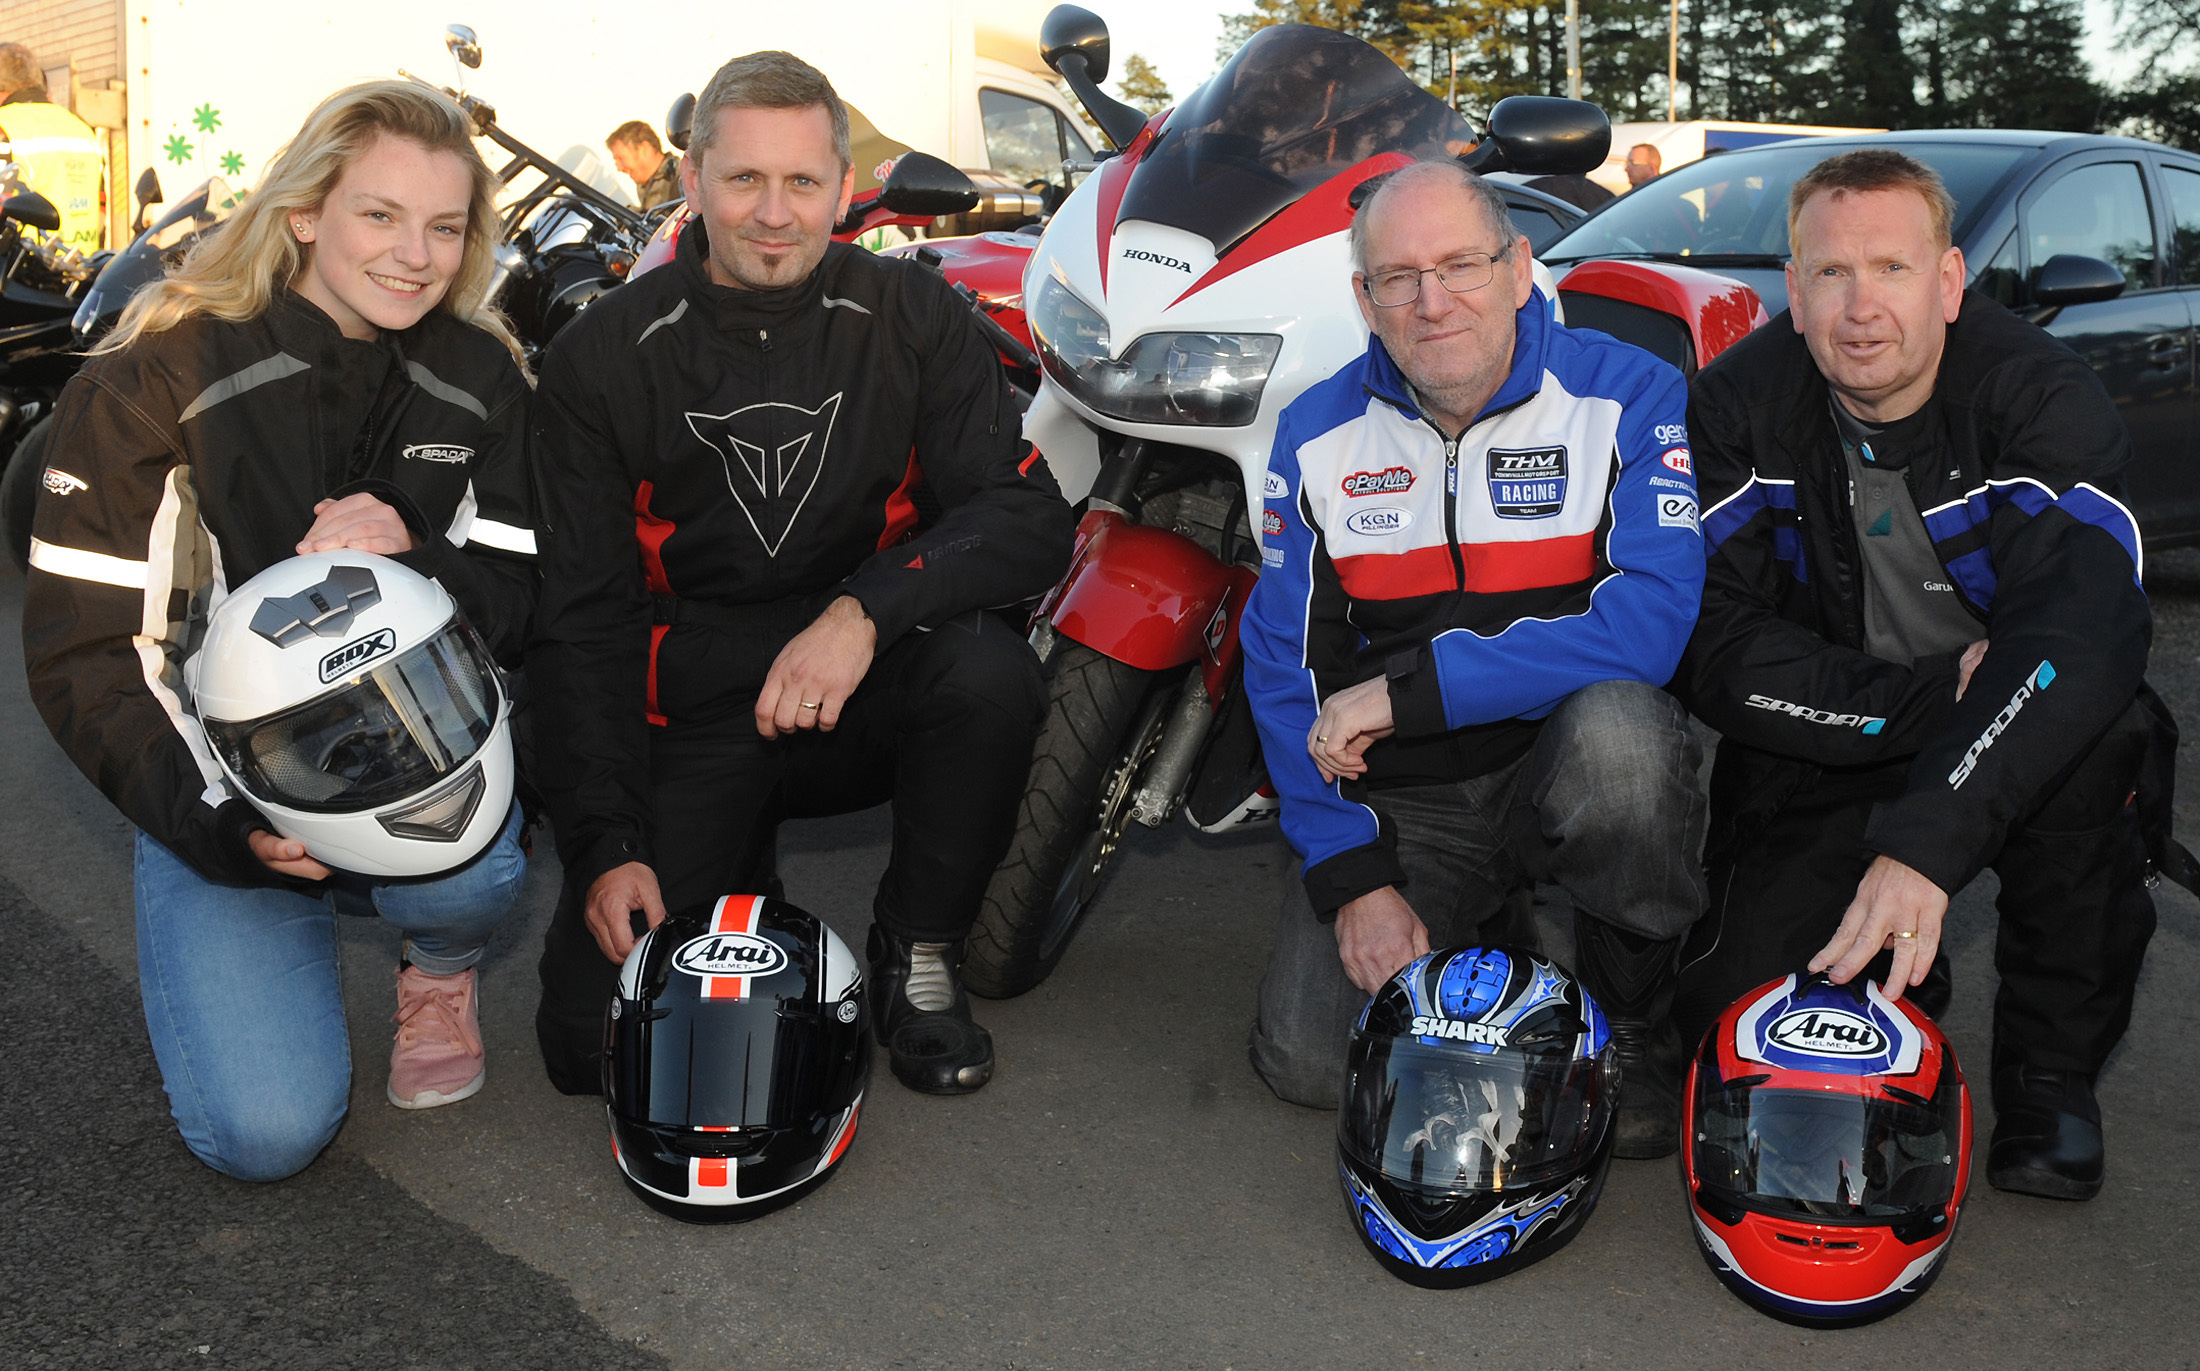 Motorcycle Events, Charity Rides, Motorcycle Shows and more